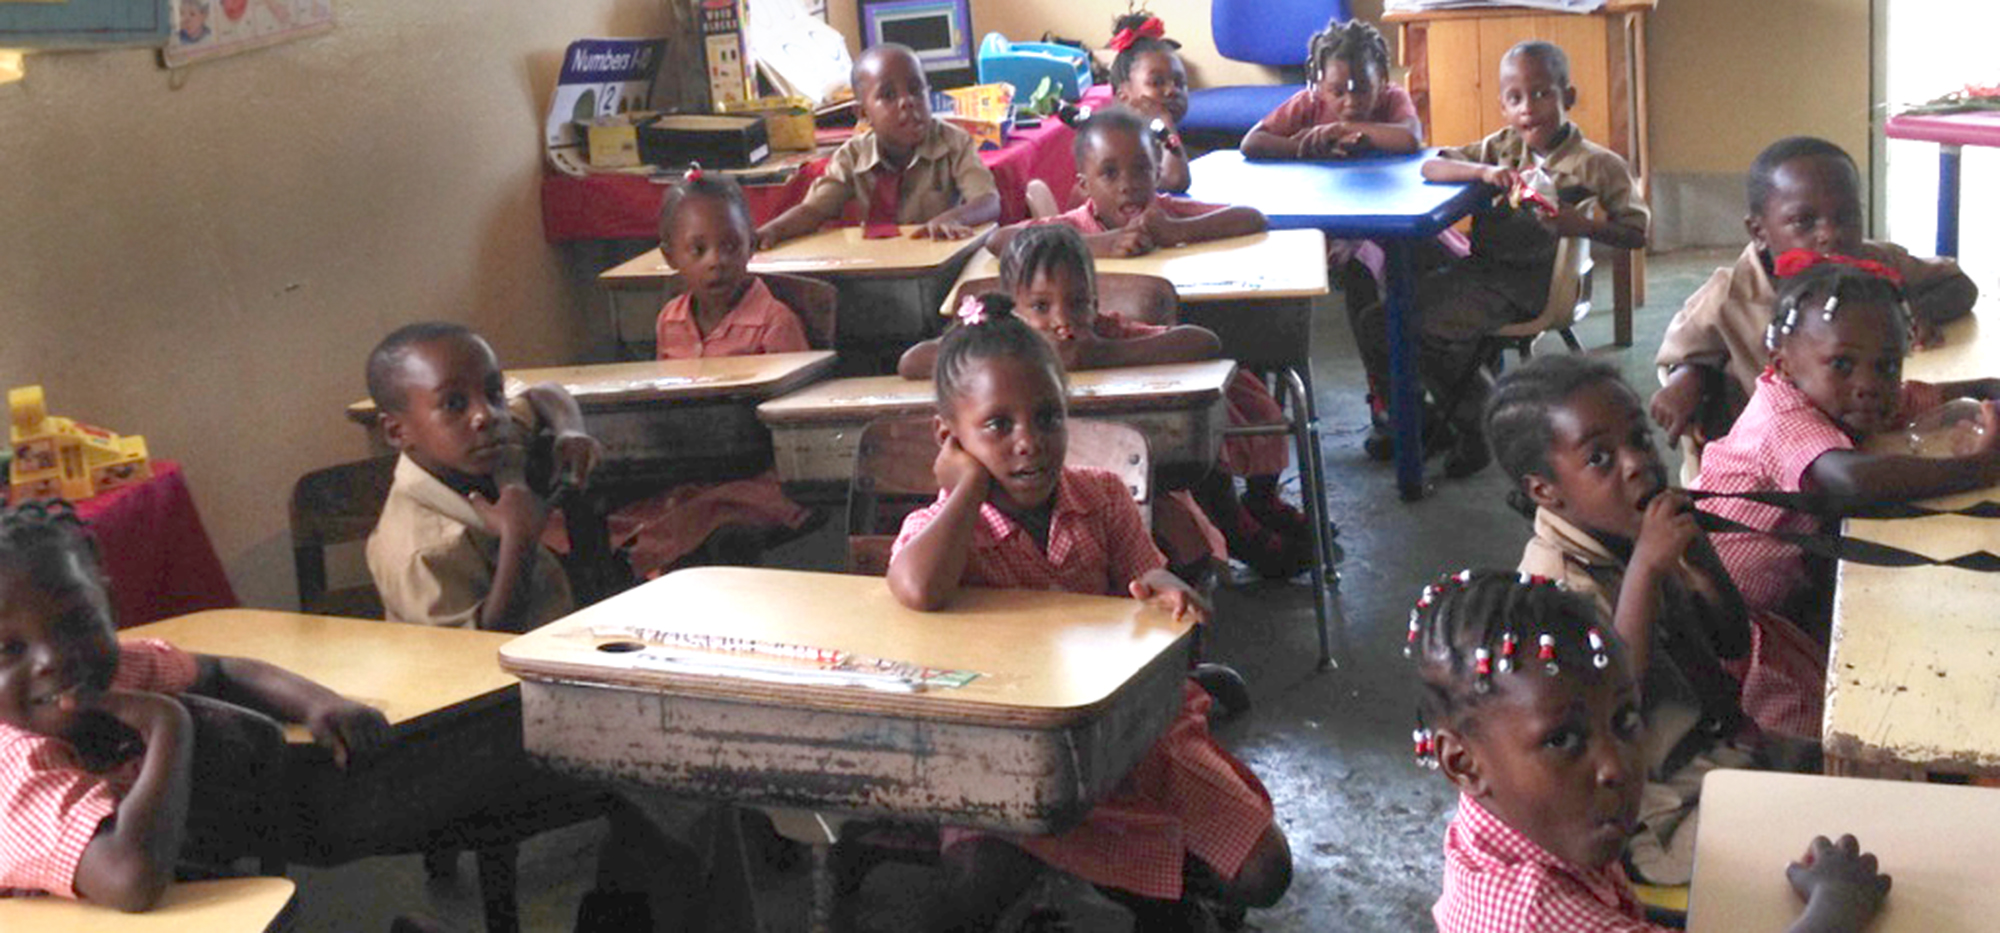 Children in a classroom at Bottom Halse Hall Basic School in Clarendon, Jamaica